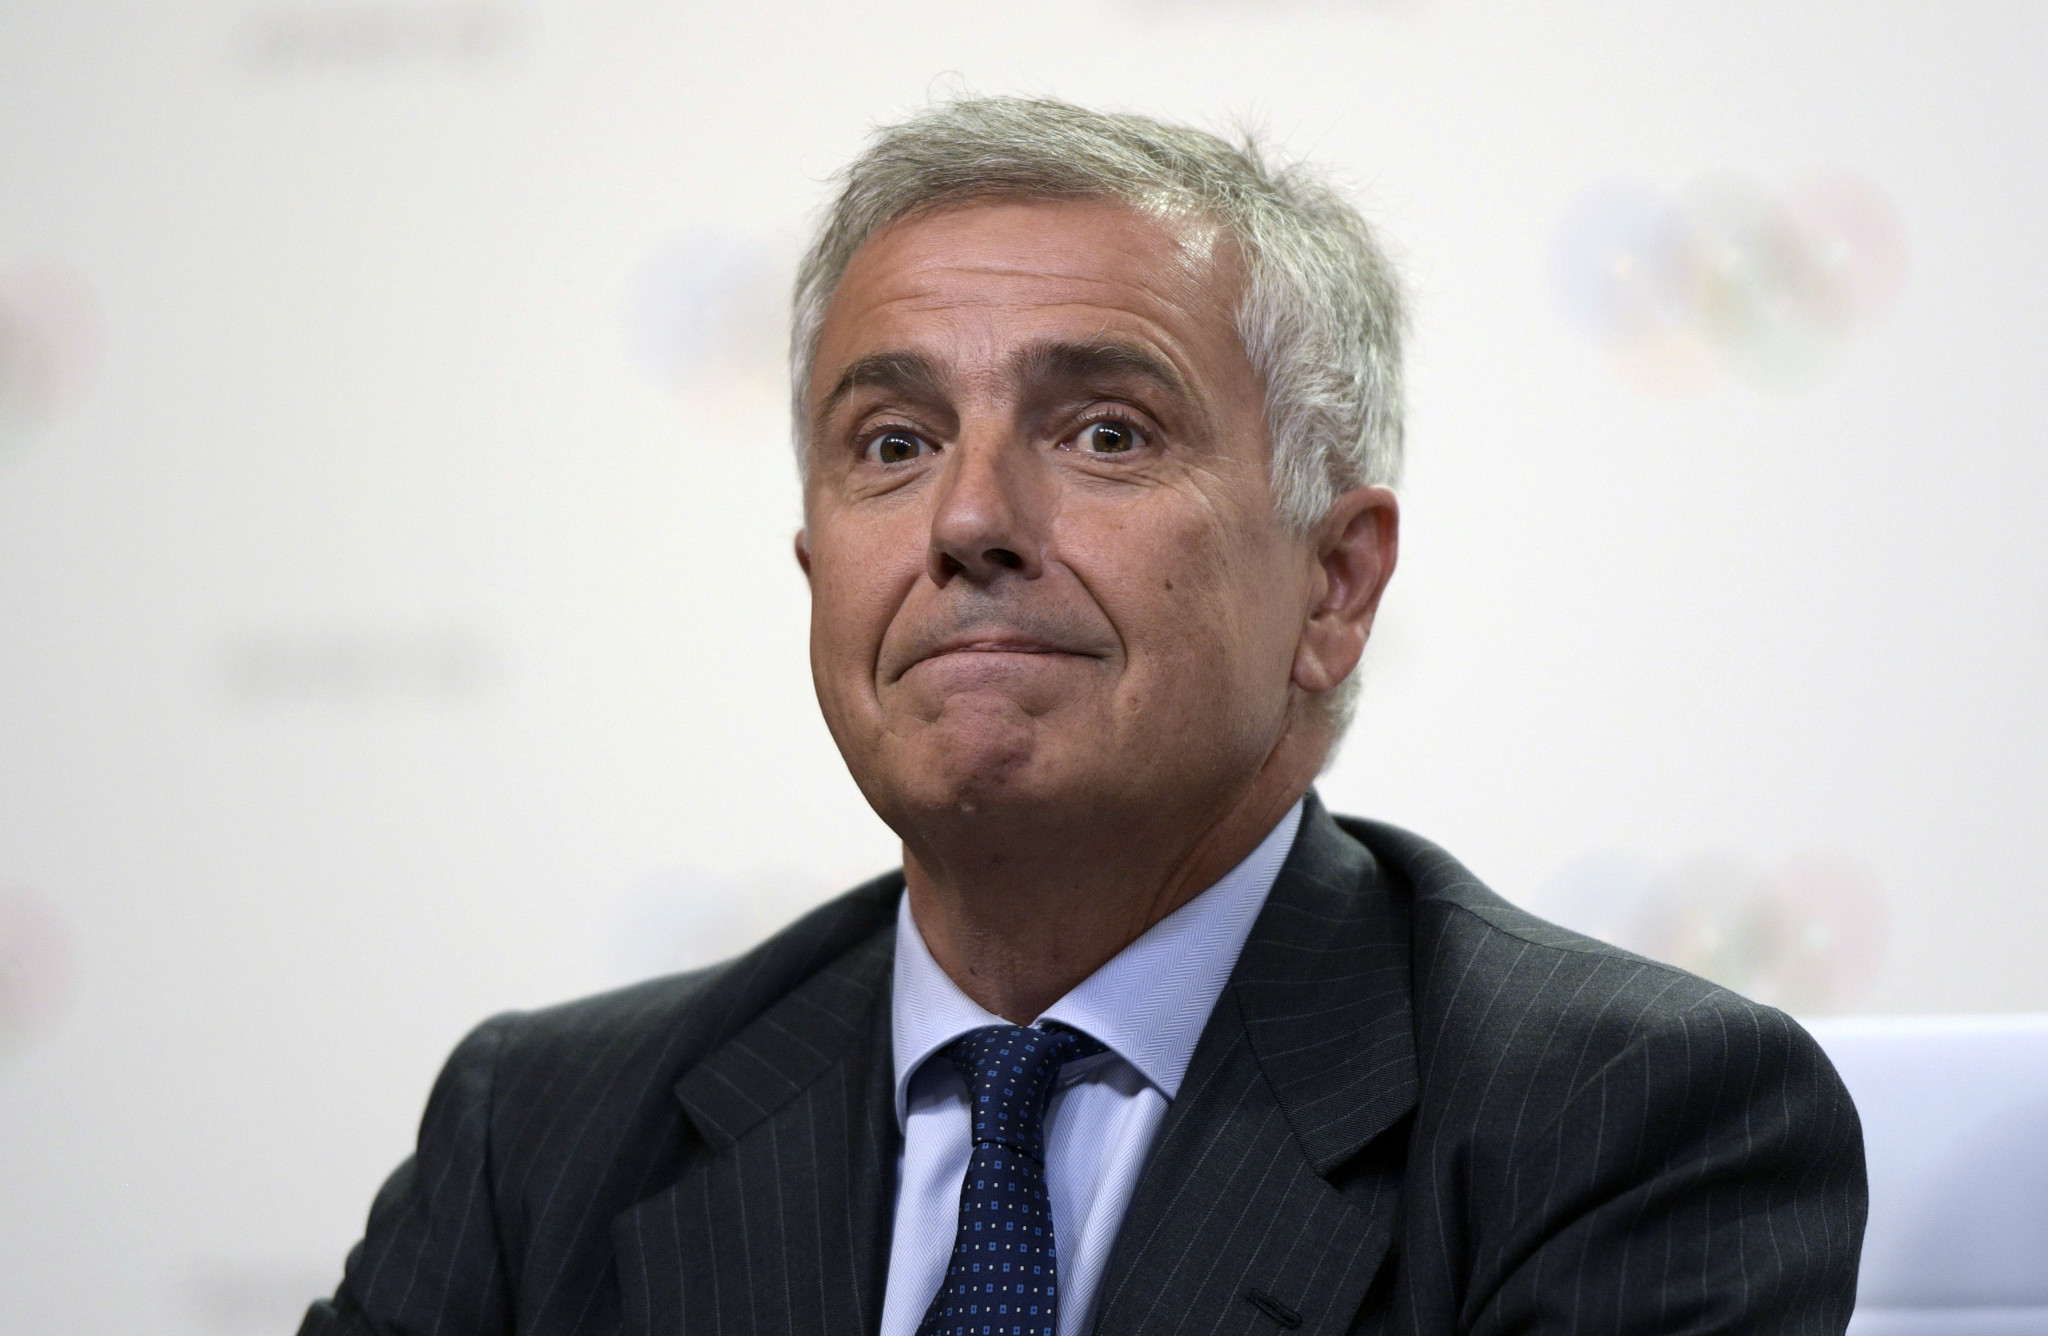 IOC vice-president Juan Antonio Samaranch chaired the 2026 Olympic Games working group ©Getty Images